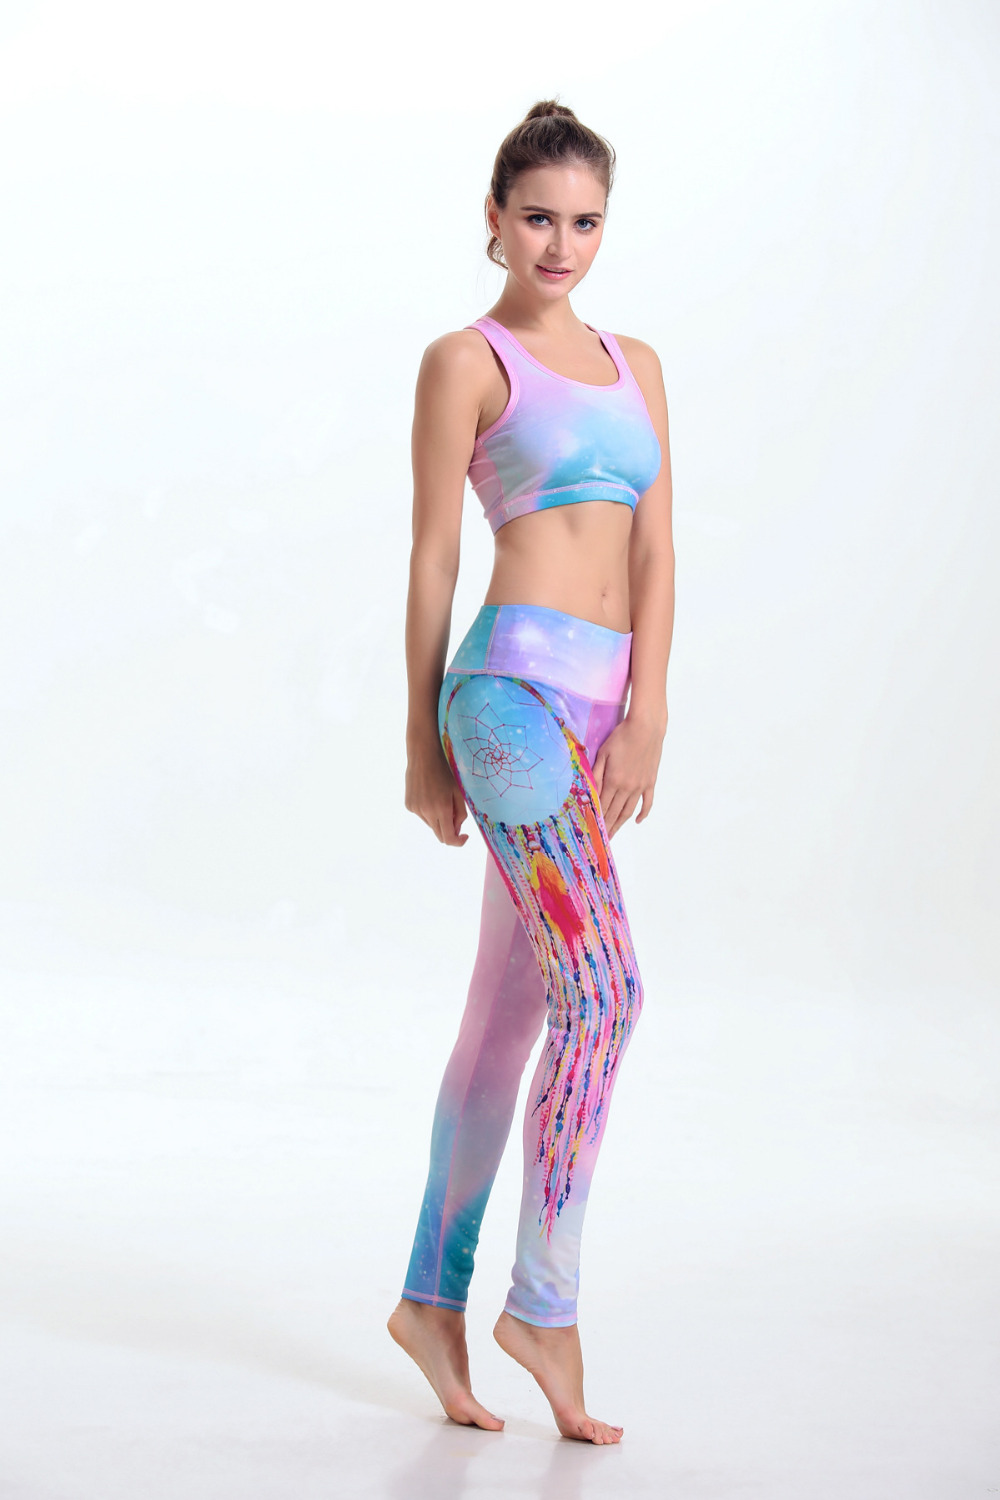 705ef7ed37 3D Printed Yoga Pants Women Star Colorful Yoga Leggins Sport Running Tights  Sportswear Fitness Yoga Leggings China Shop Online on Aliexpress.com |  Alibaba ...